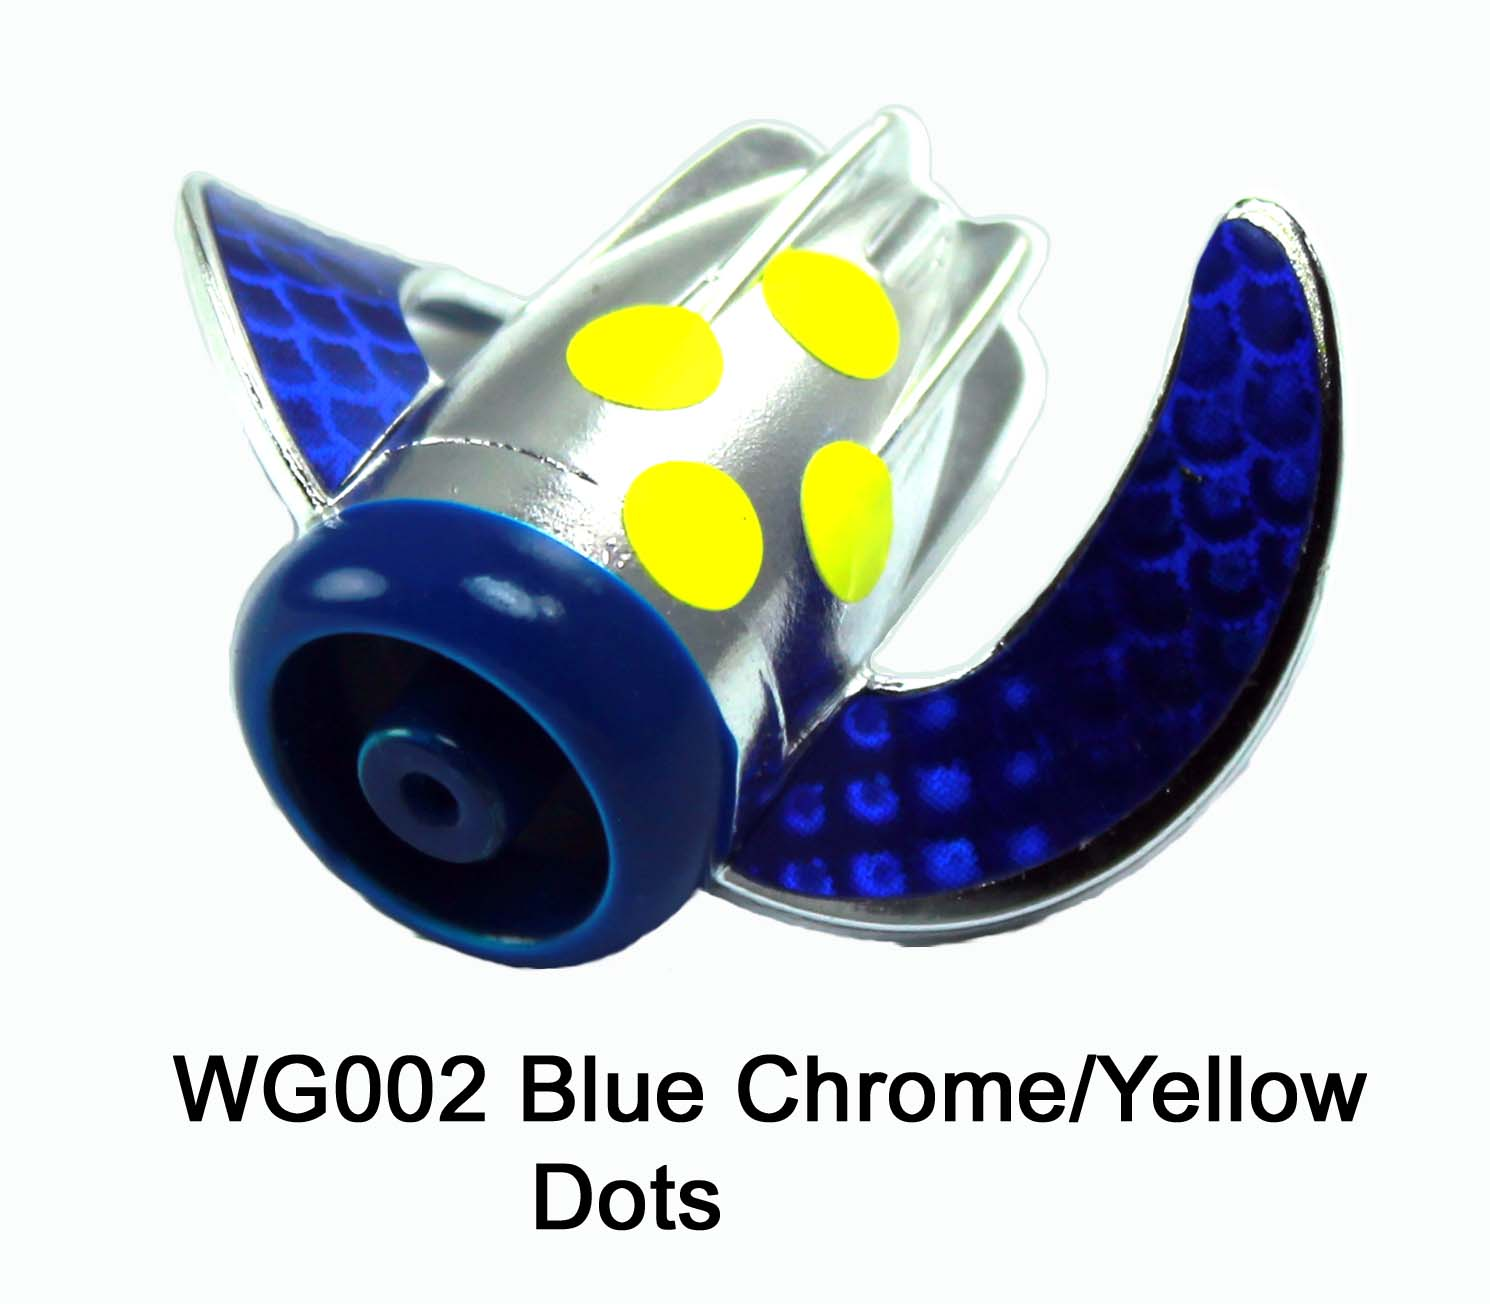 WG002 WhirlyGig Blue Chrome/Yell